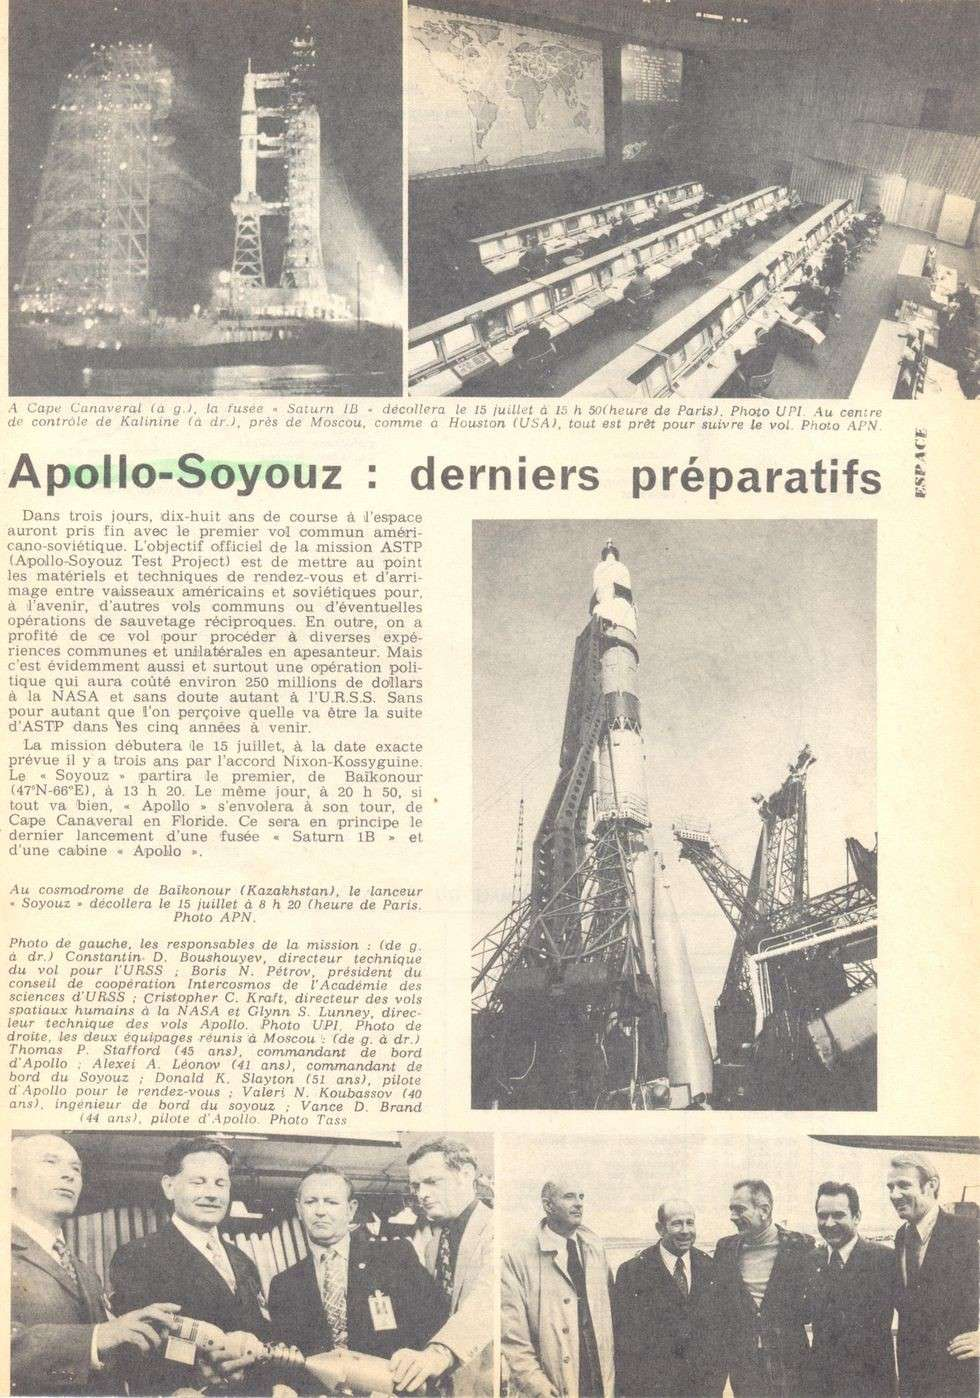 15 juillet 1975 - Mission Apollo - Soyouz 75071210